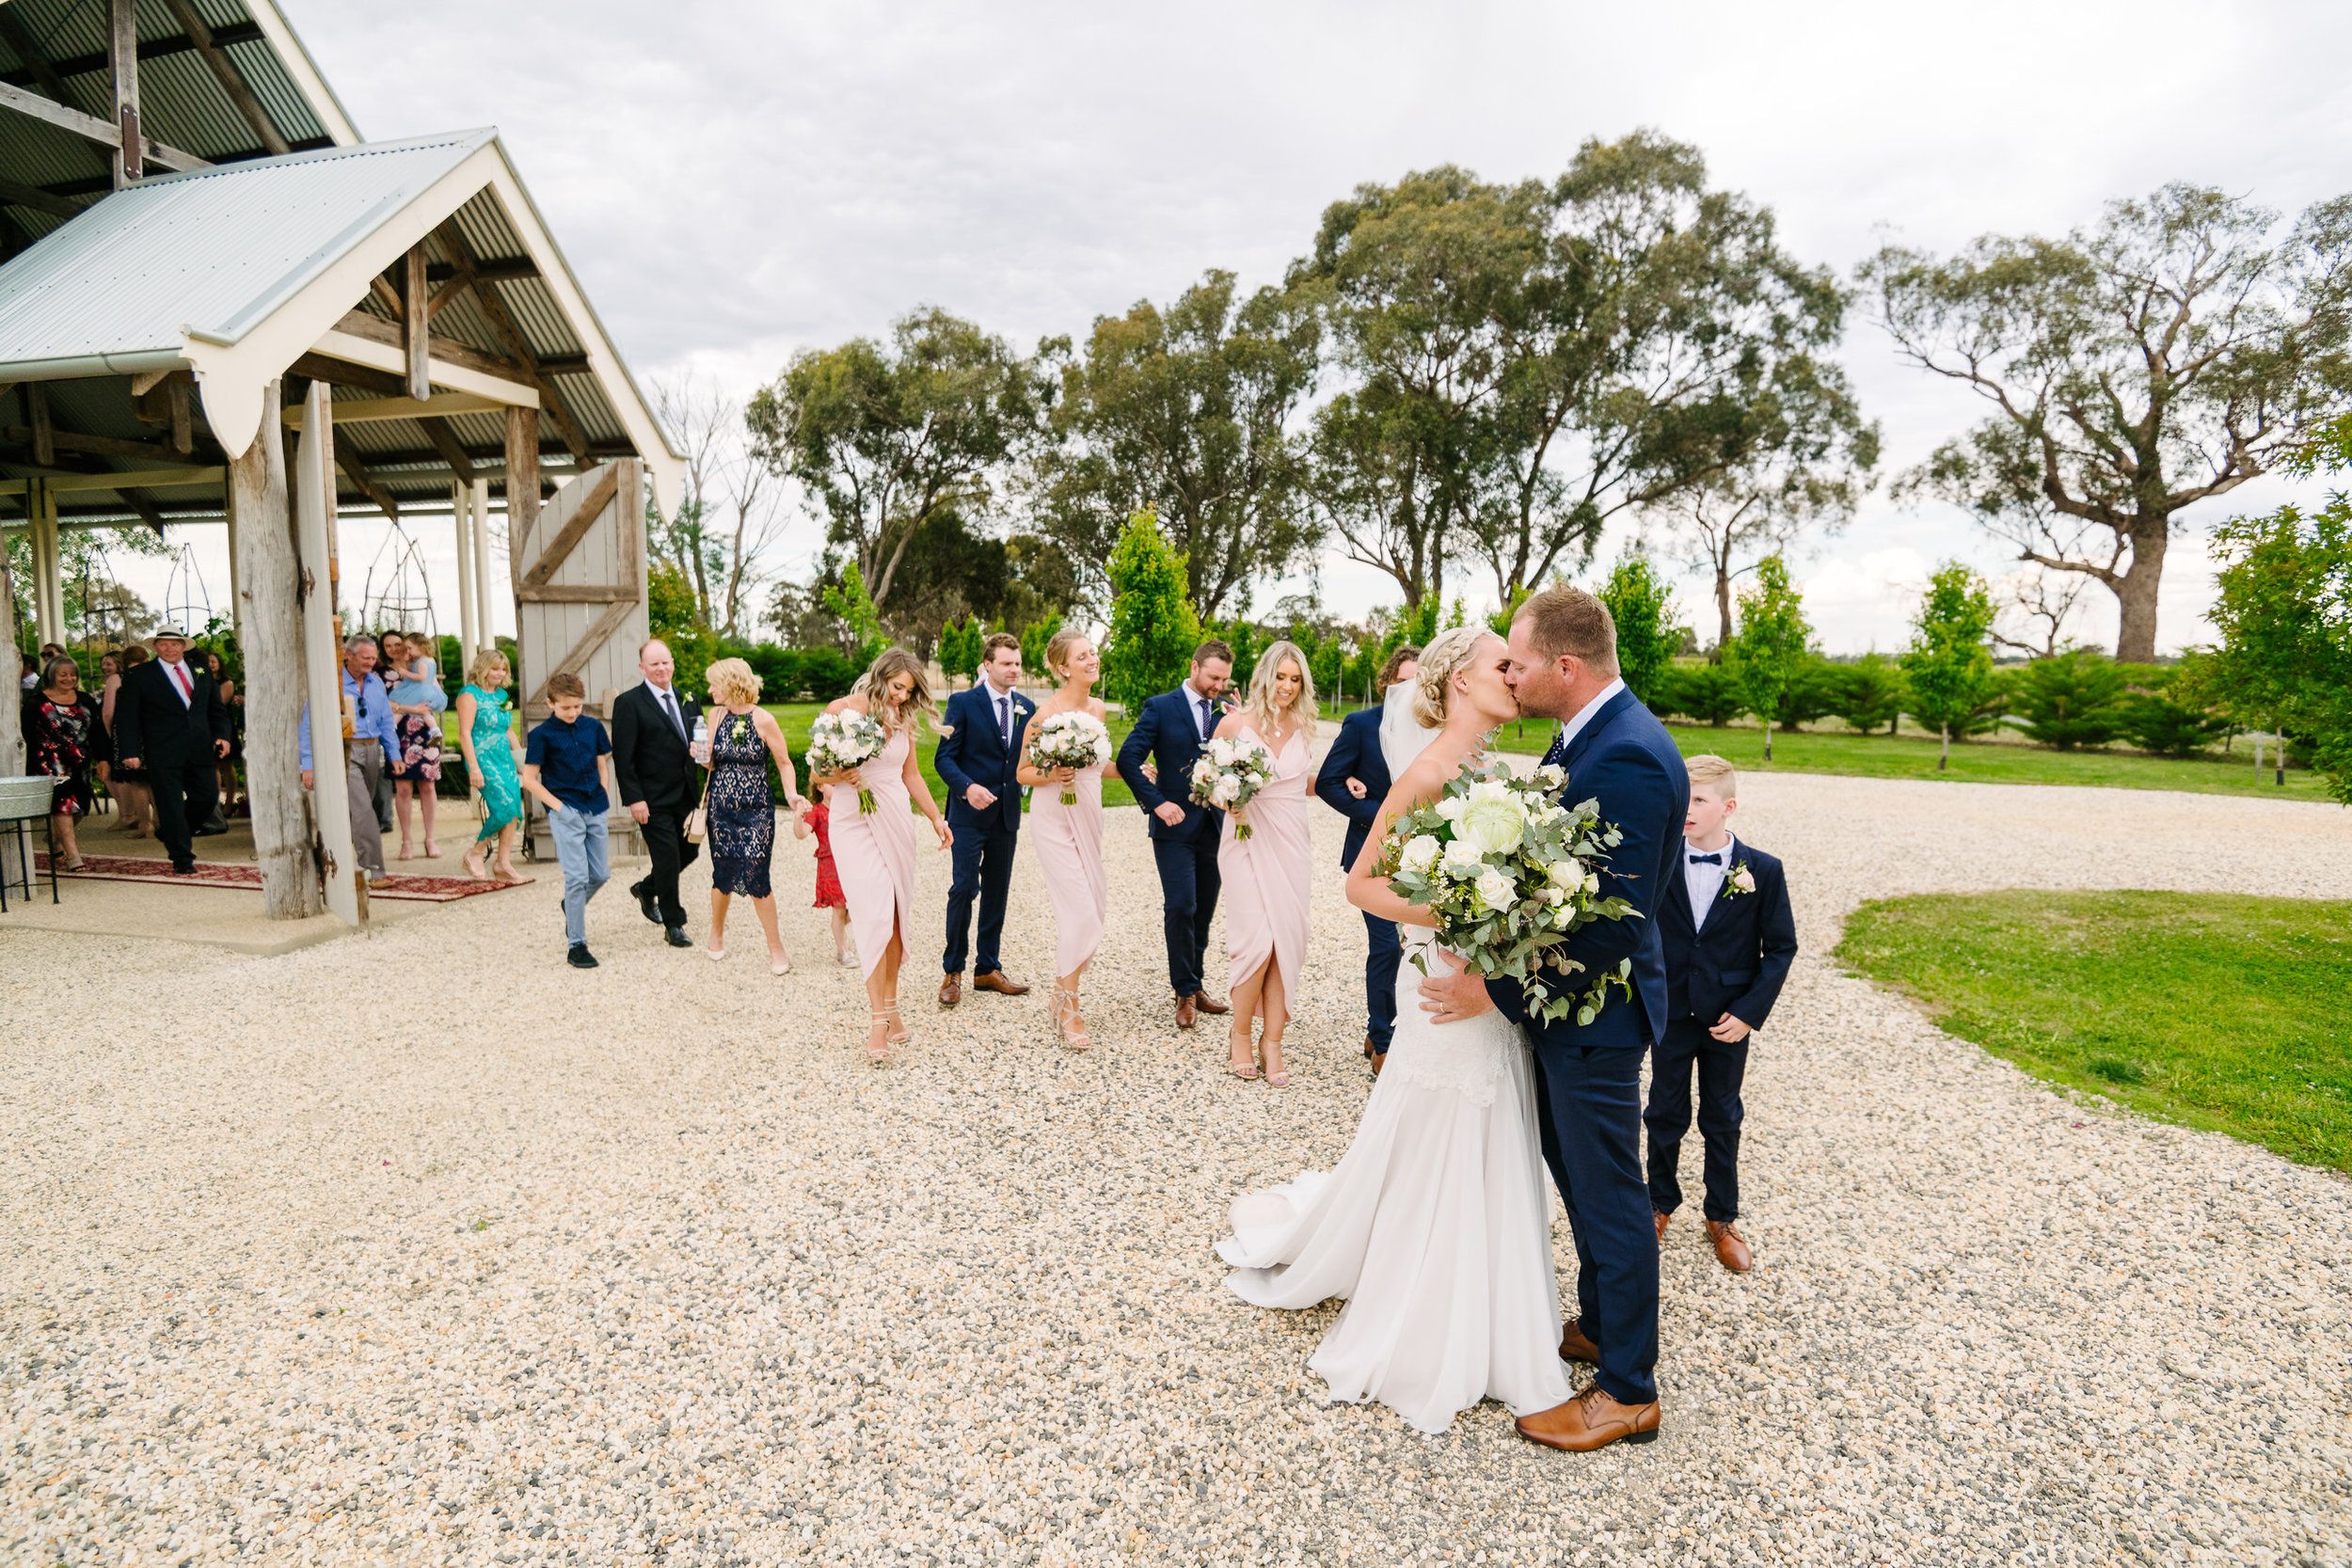 Justin_And_Jim_Photography_Byrchendale_Barn_Wedding56.JPG